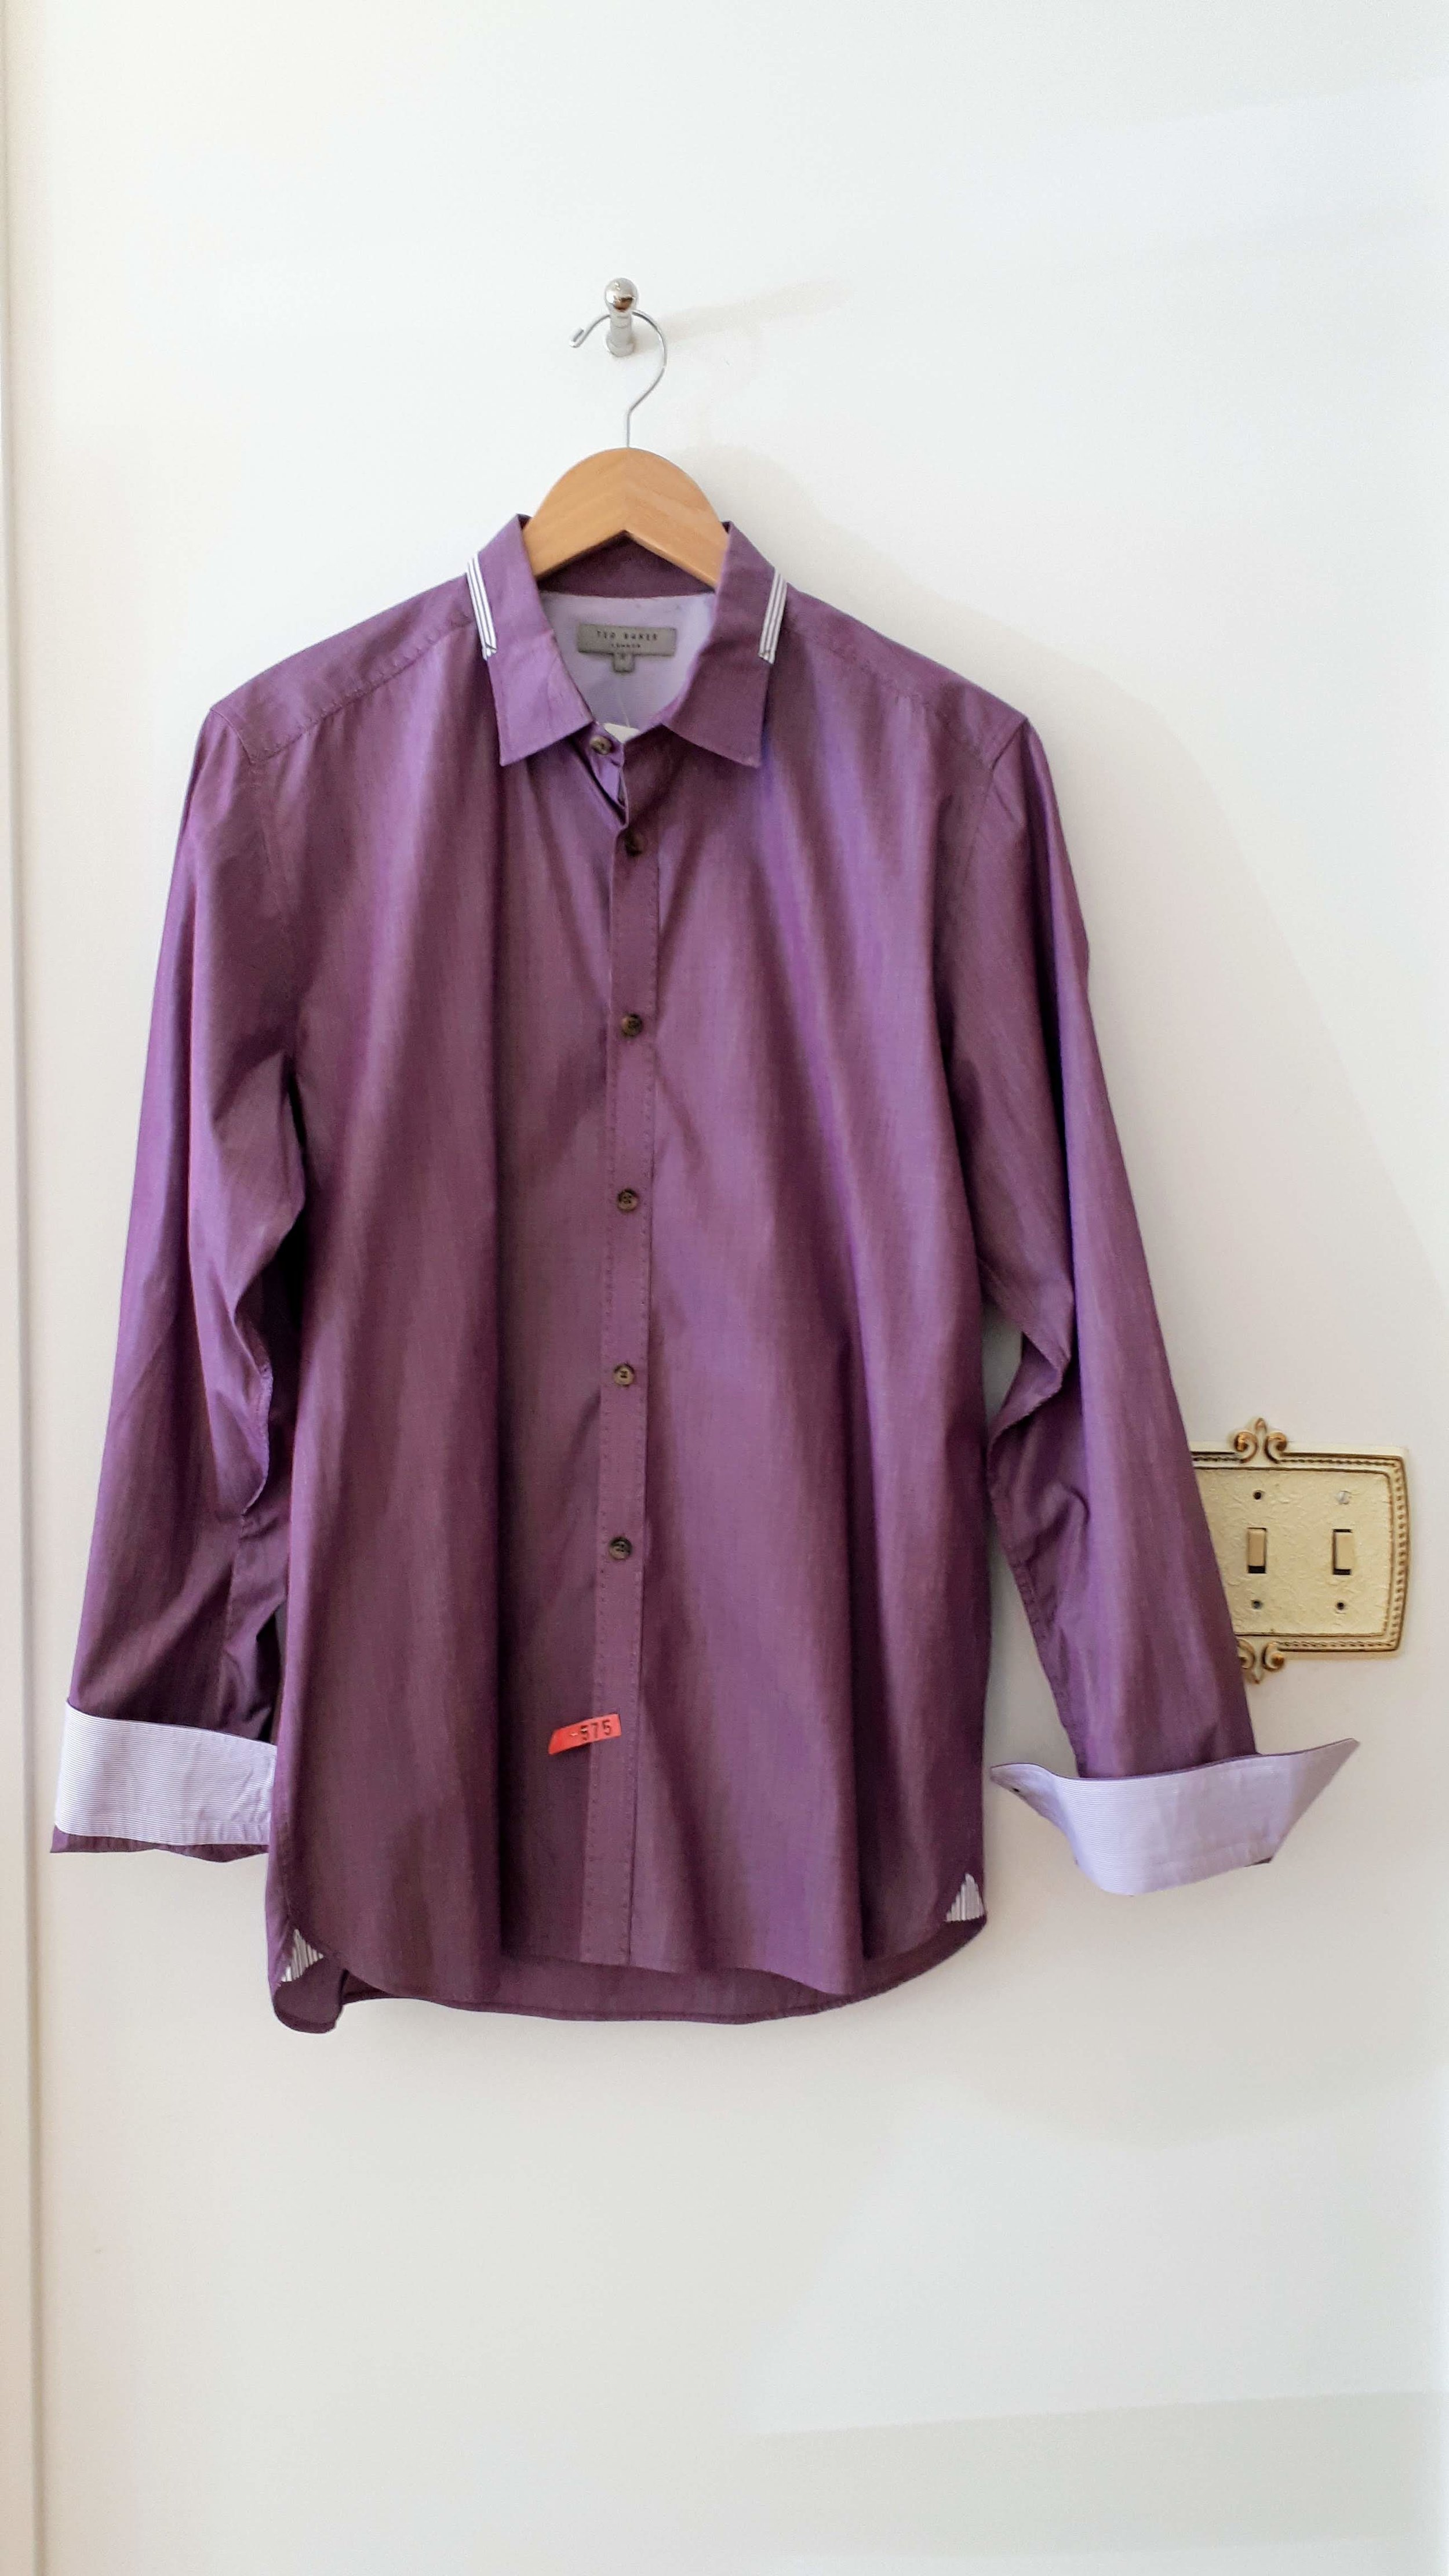 Ted Baker shirt; Size M, $48